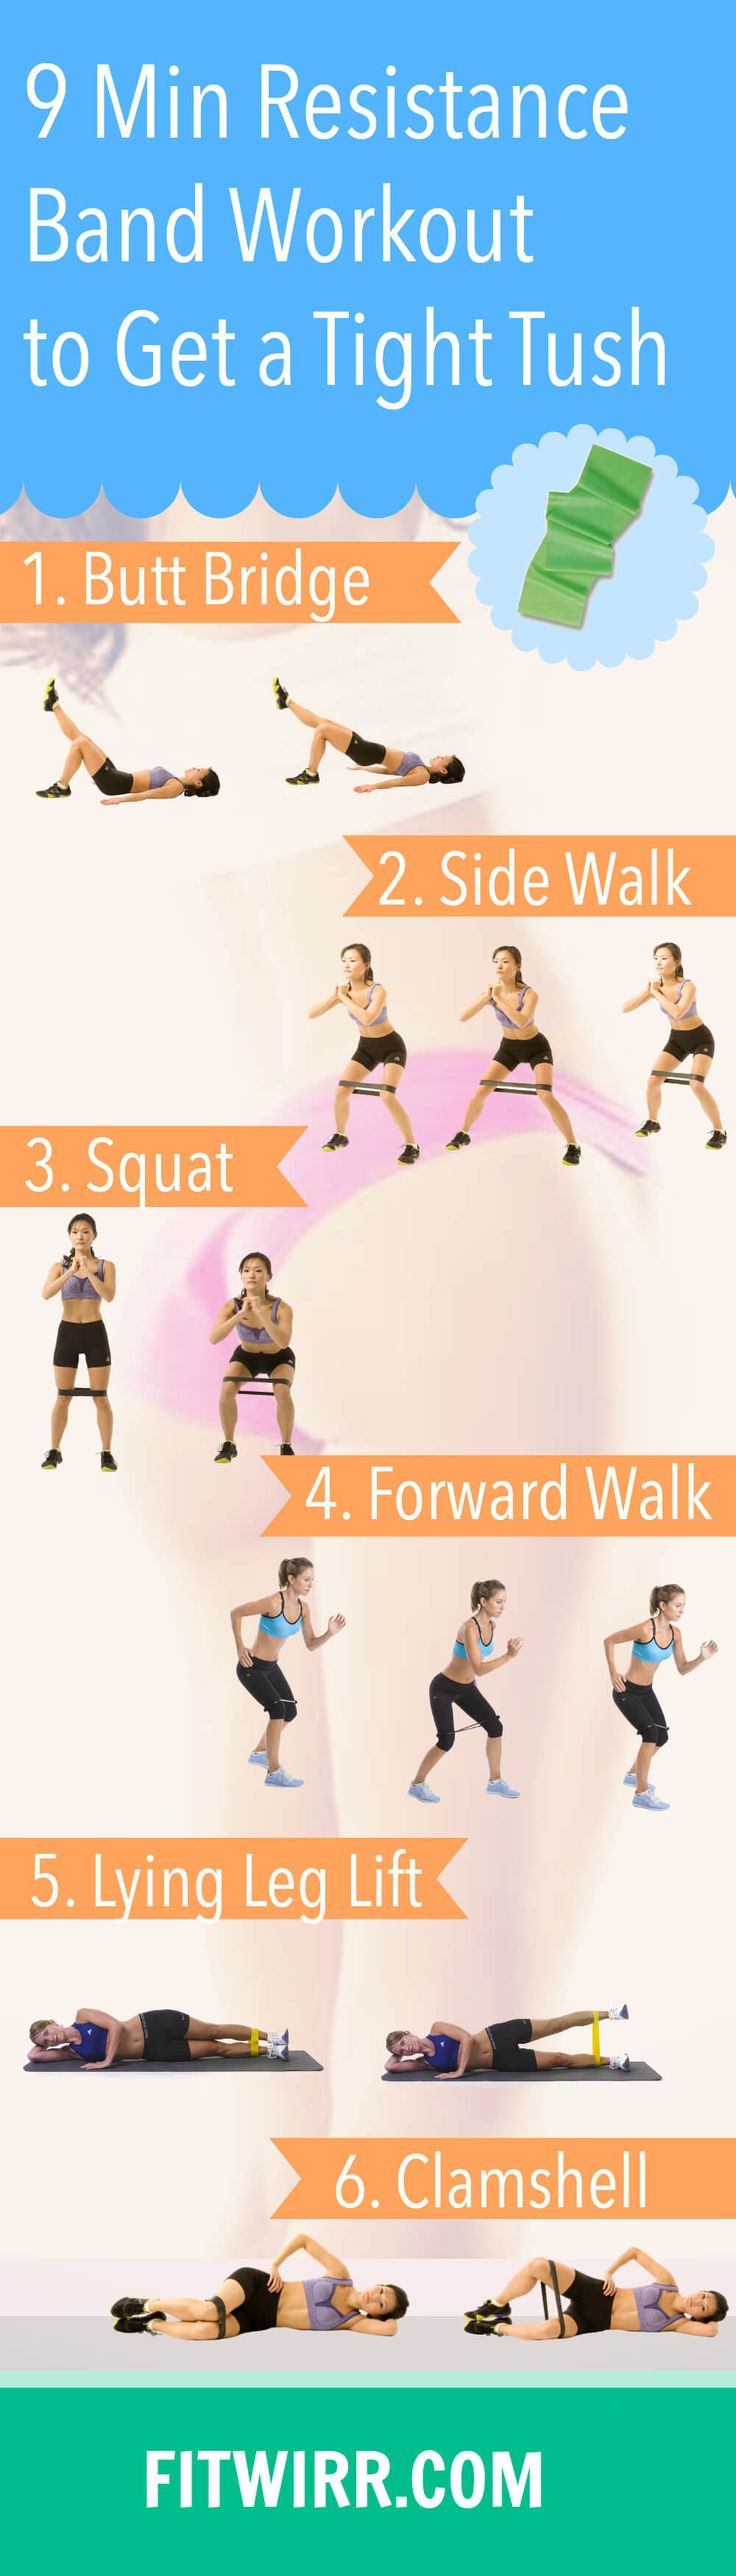 Resistance Band Workout Plan